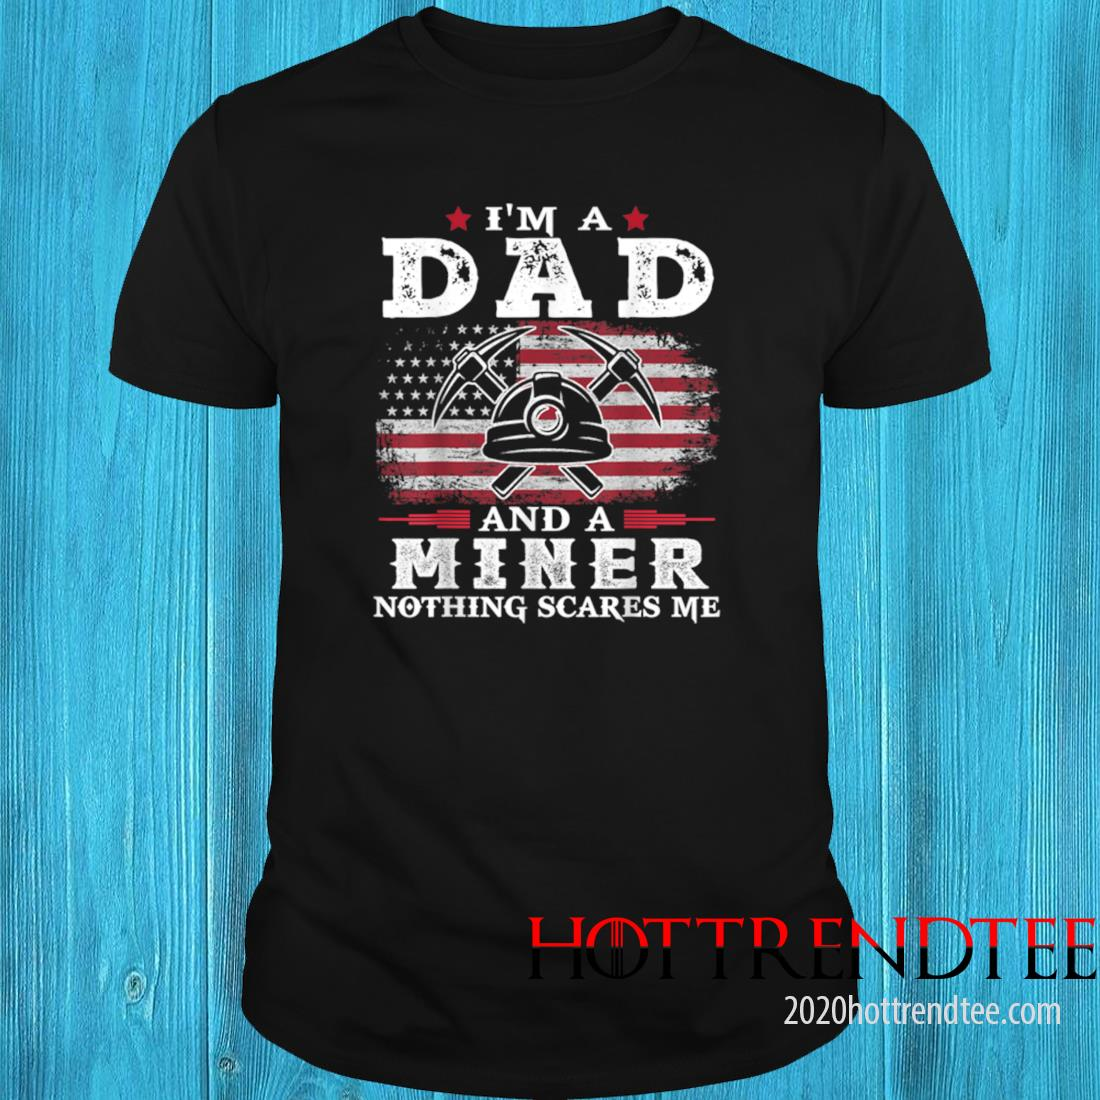 Men's Dad Coal Miner Nothing Scares Me USA Flag Father's Day Shirt